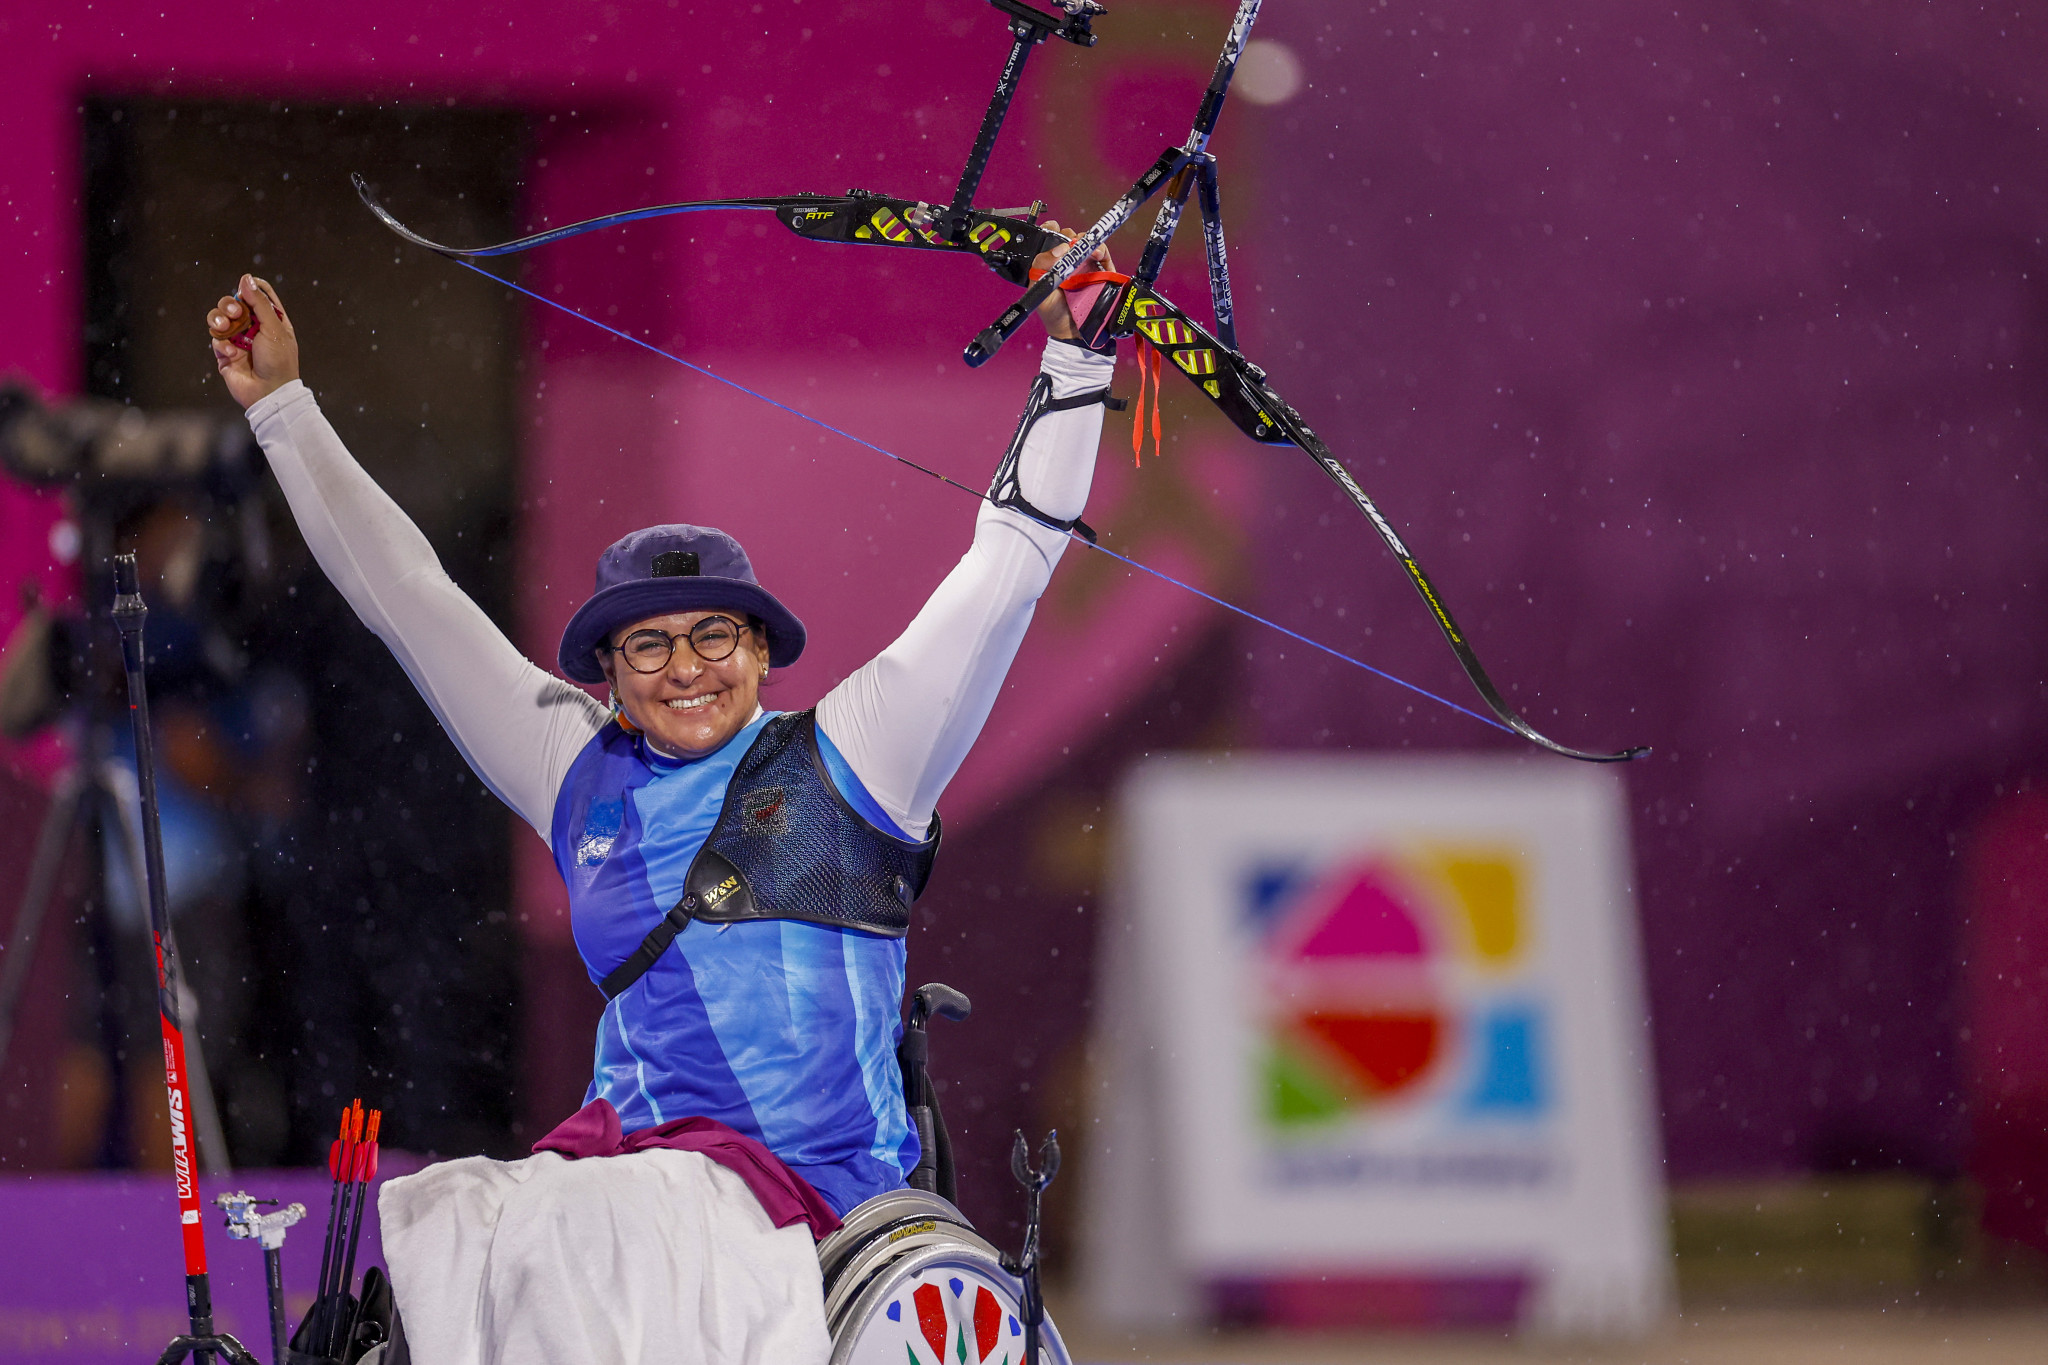 Paralympic champion Zahra Nemati was elected to the Para Archery Committee ©Getty Images